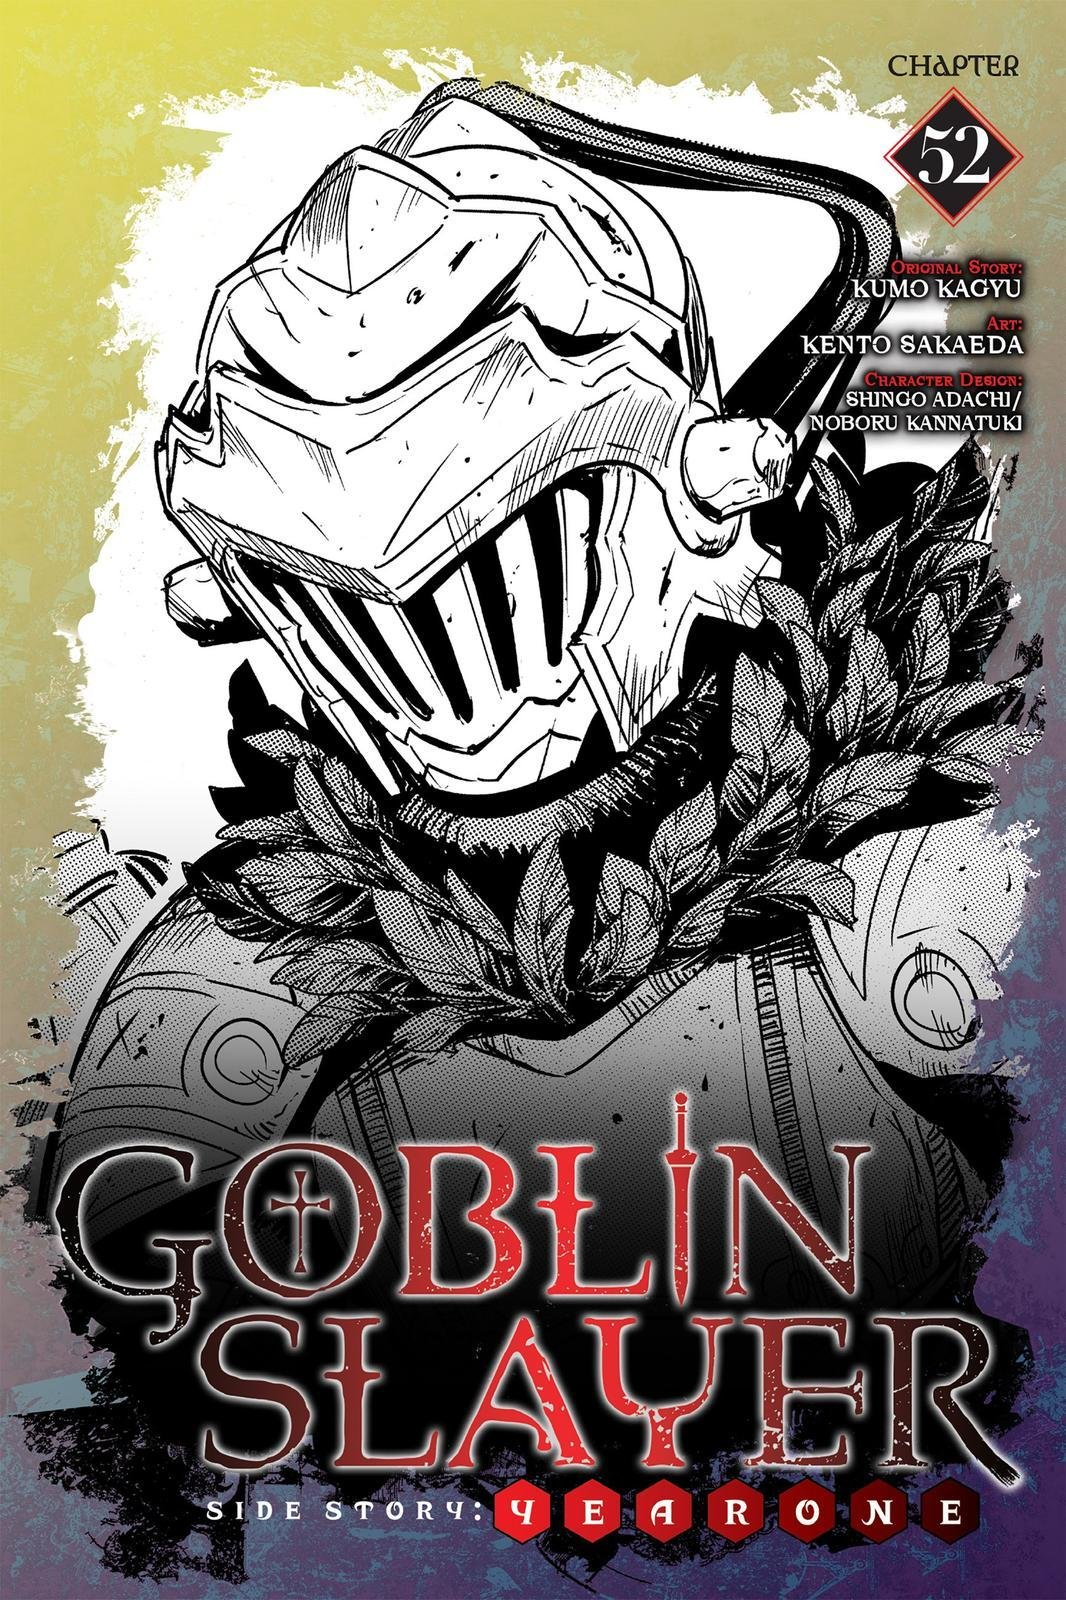 Manga Goblin Slayer Side Story: Year One - Chapter 52 Page 1